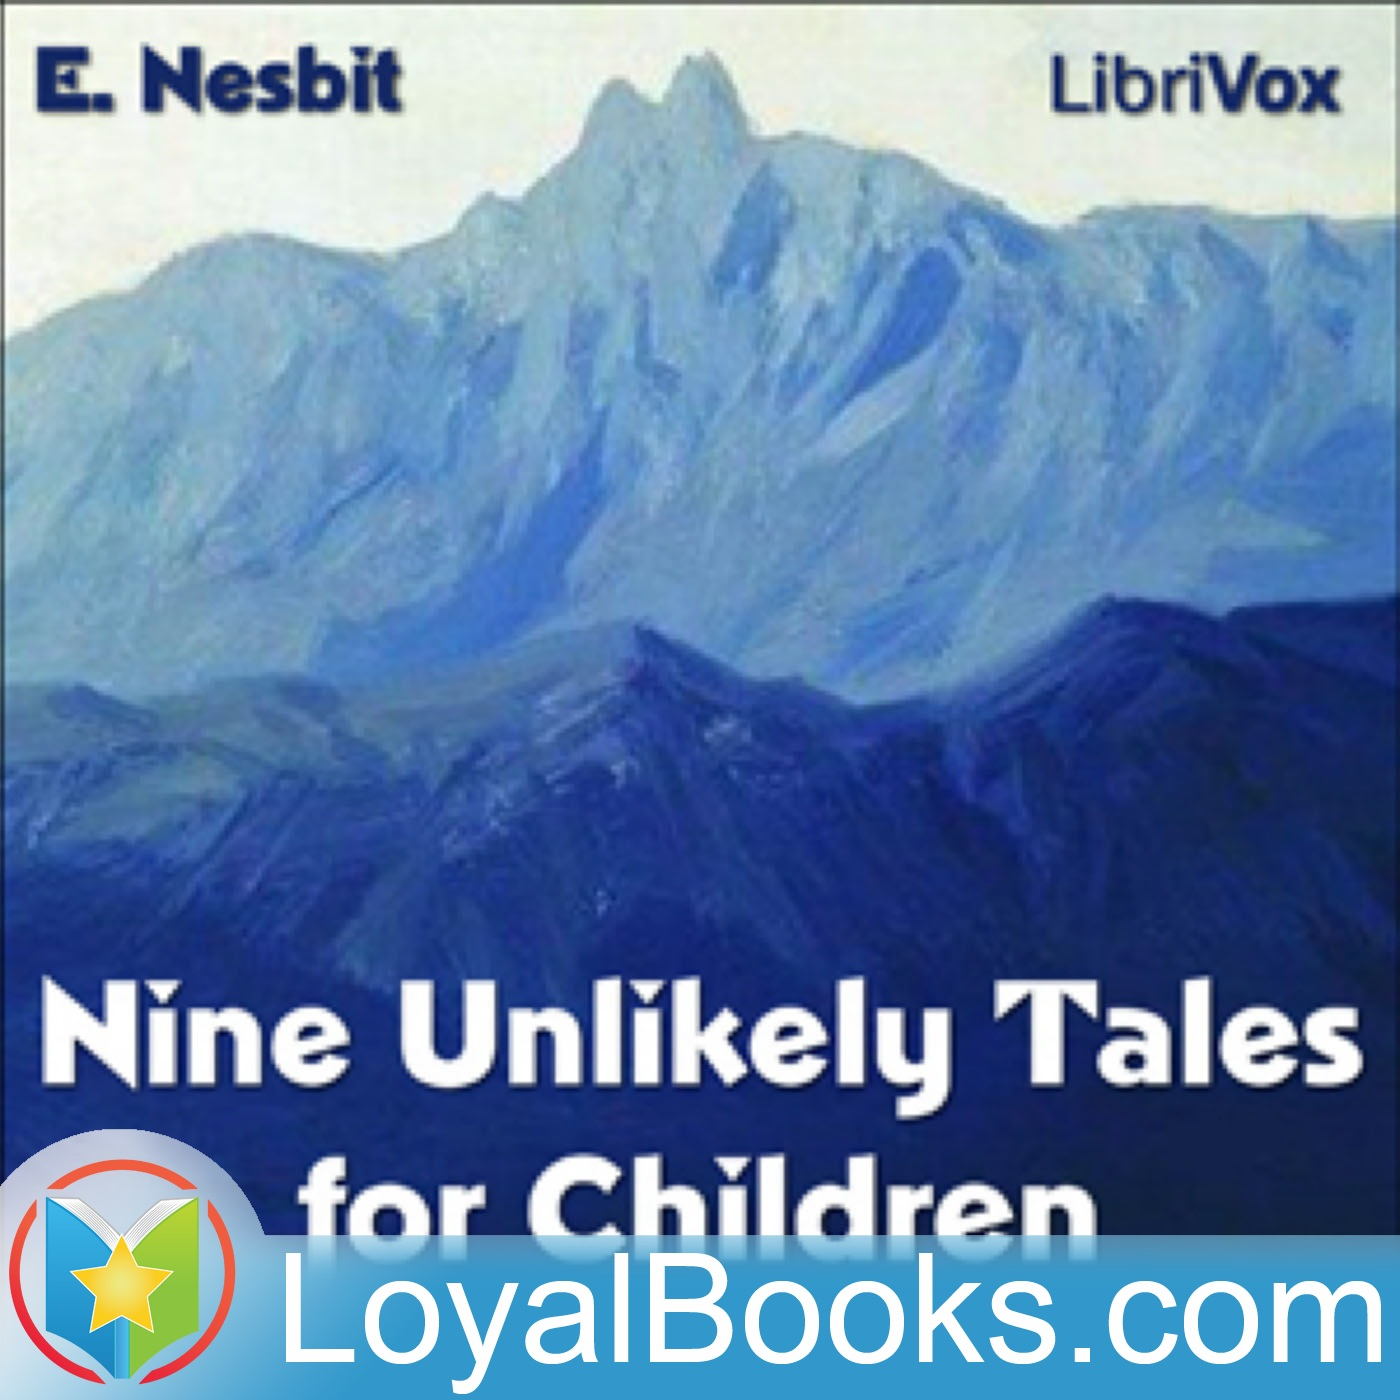 <![CDATA[Nine Unlikely Tales for Children by Edith Nesbit]]>